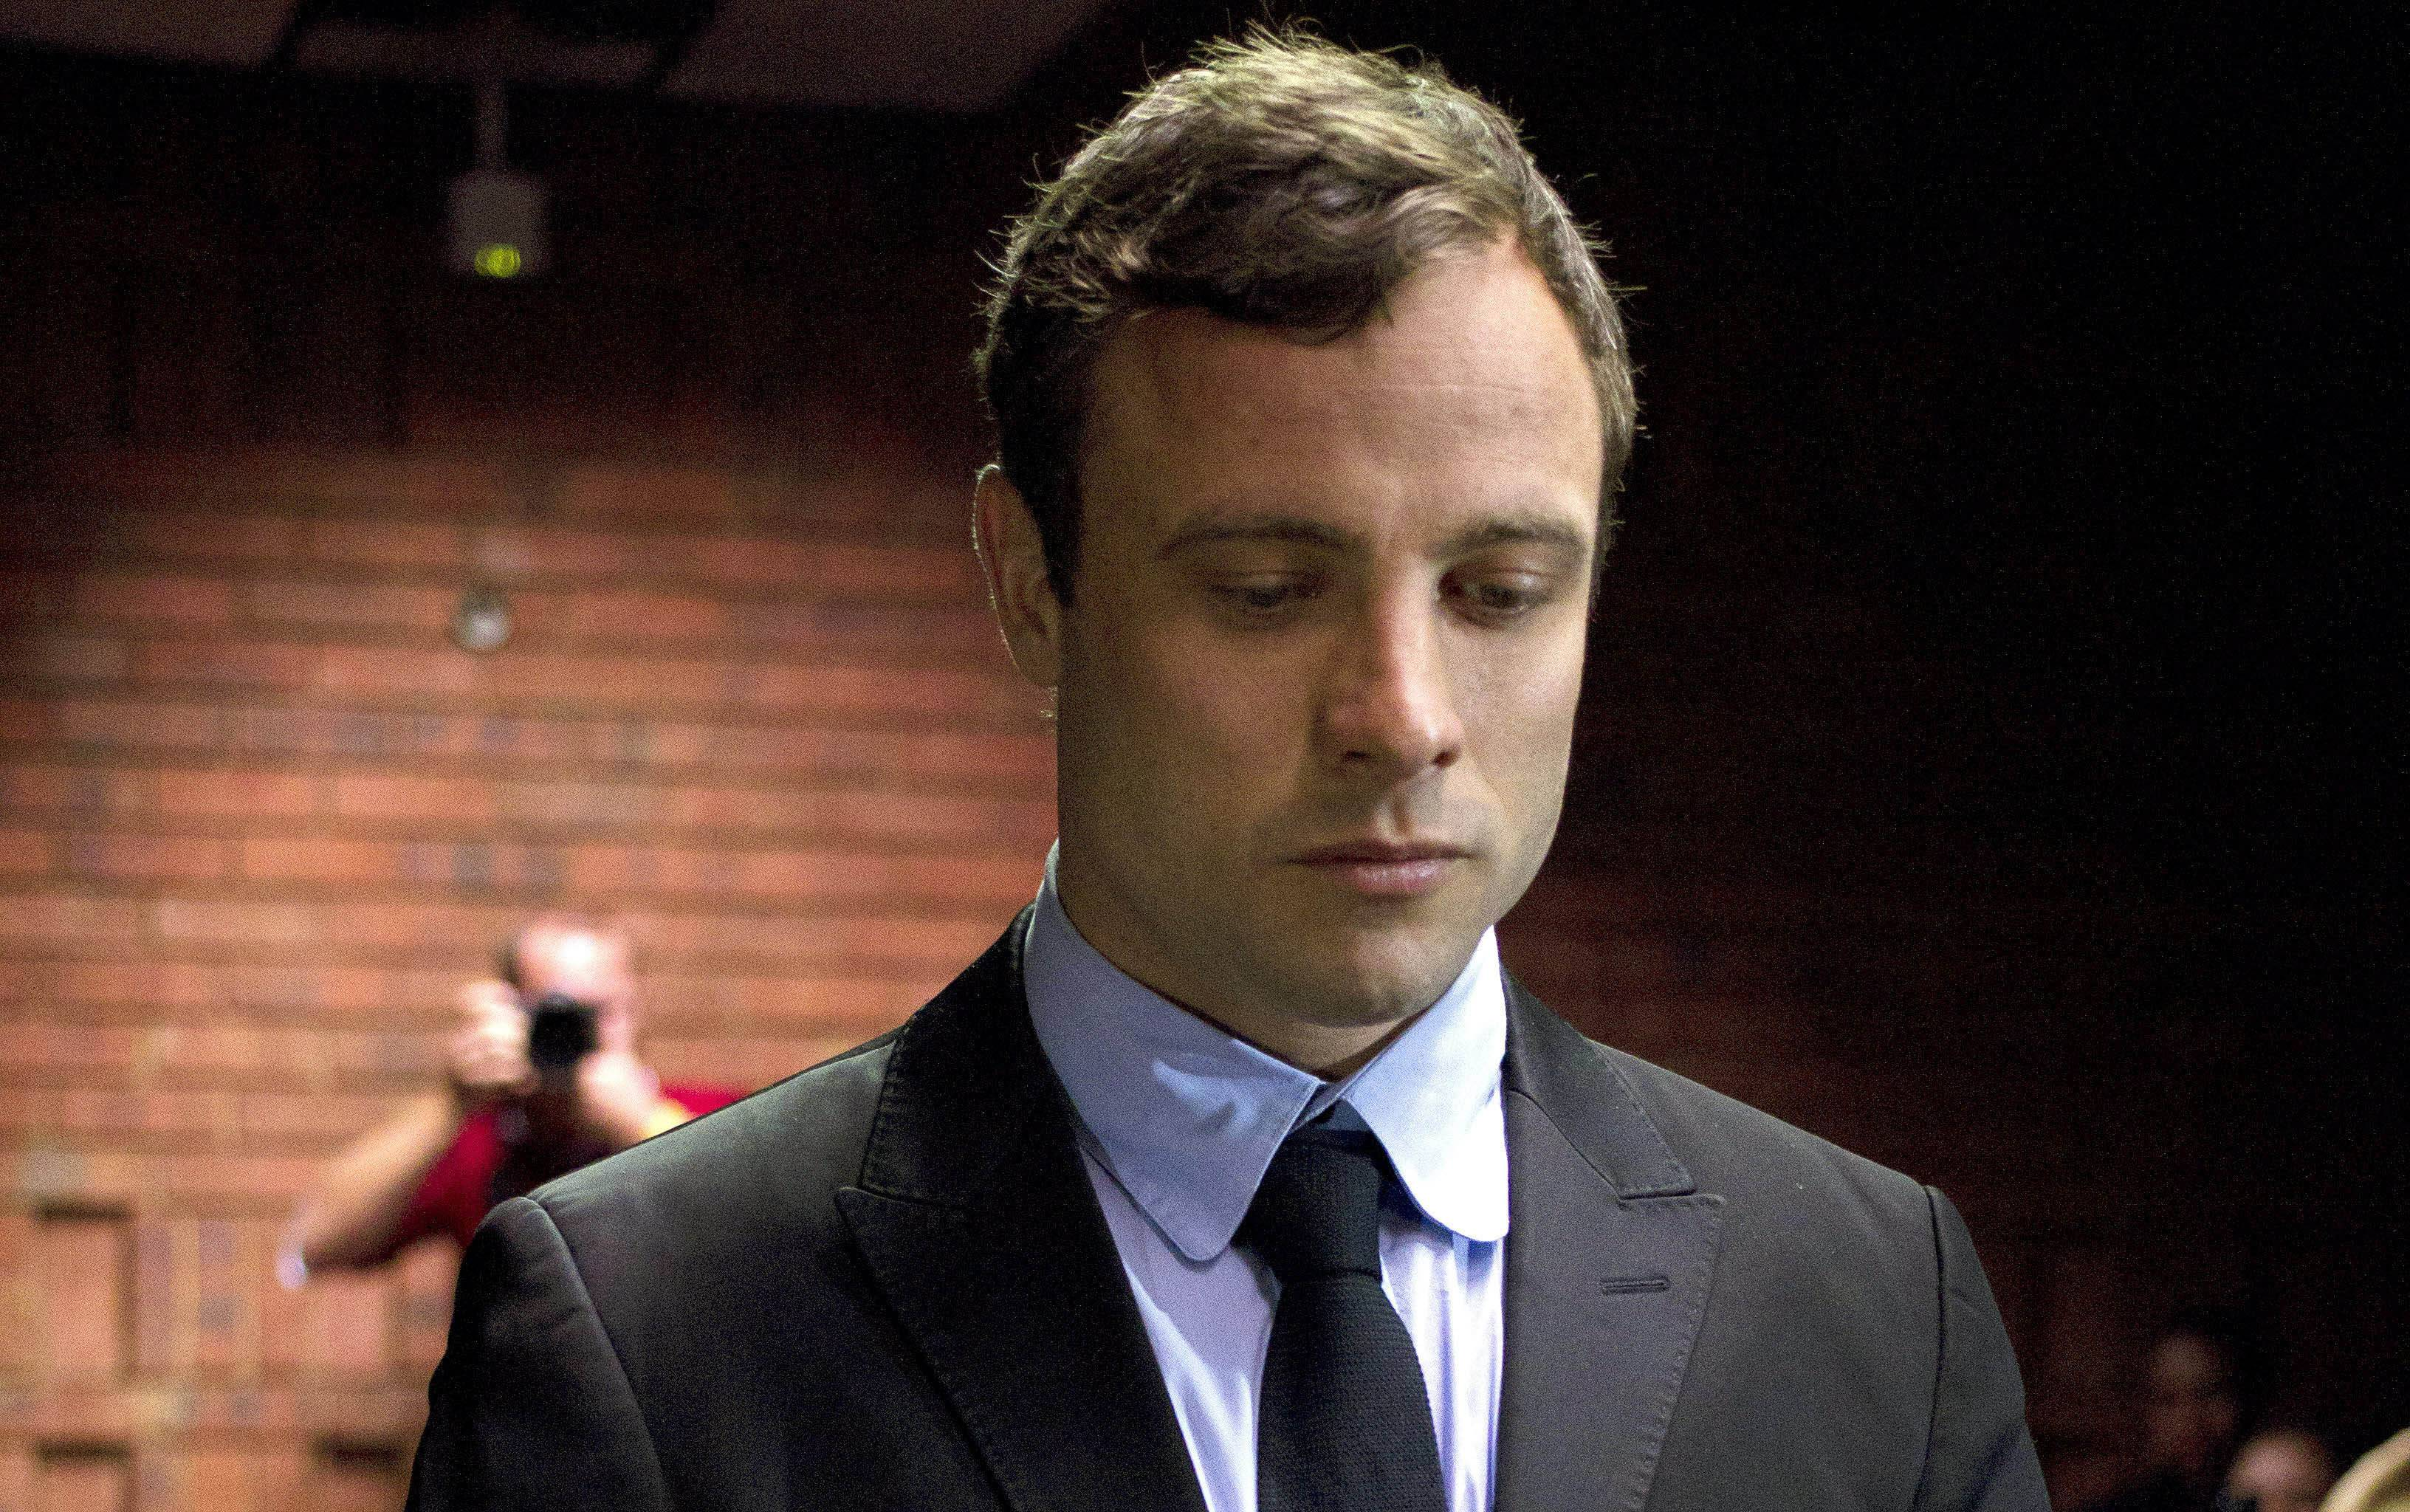 Oscar Pistorius seen shooting in gun range video